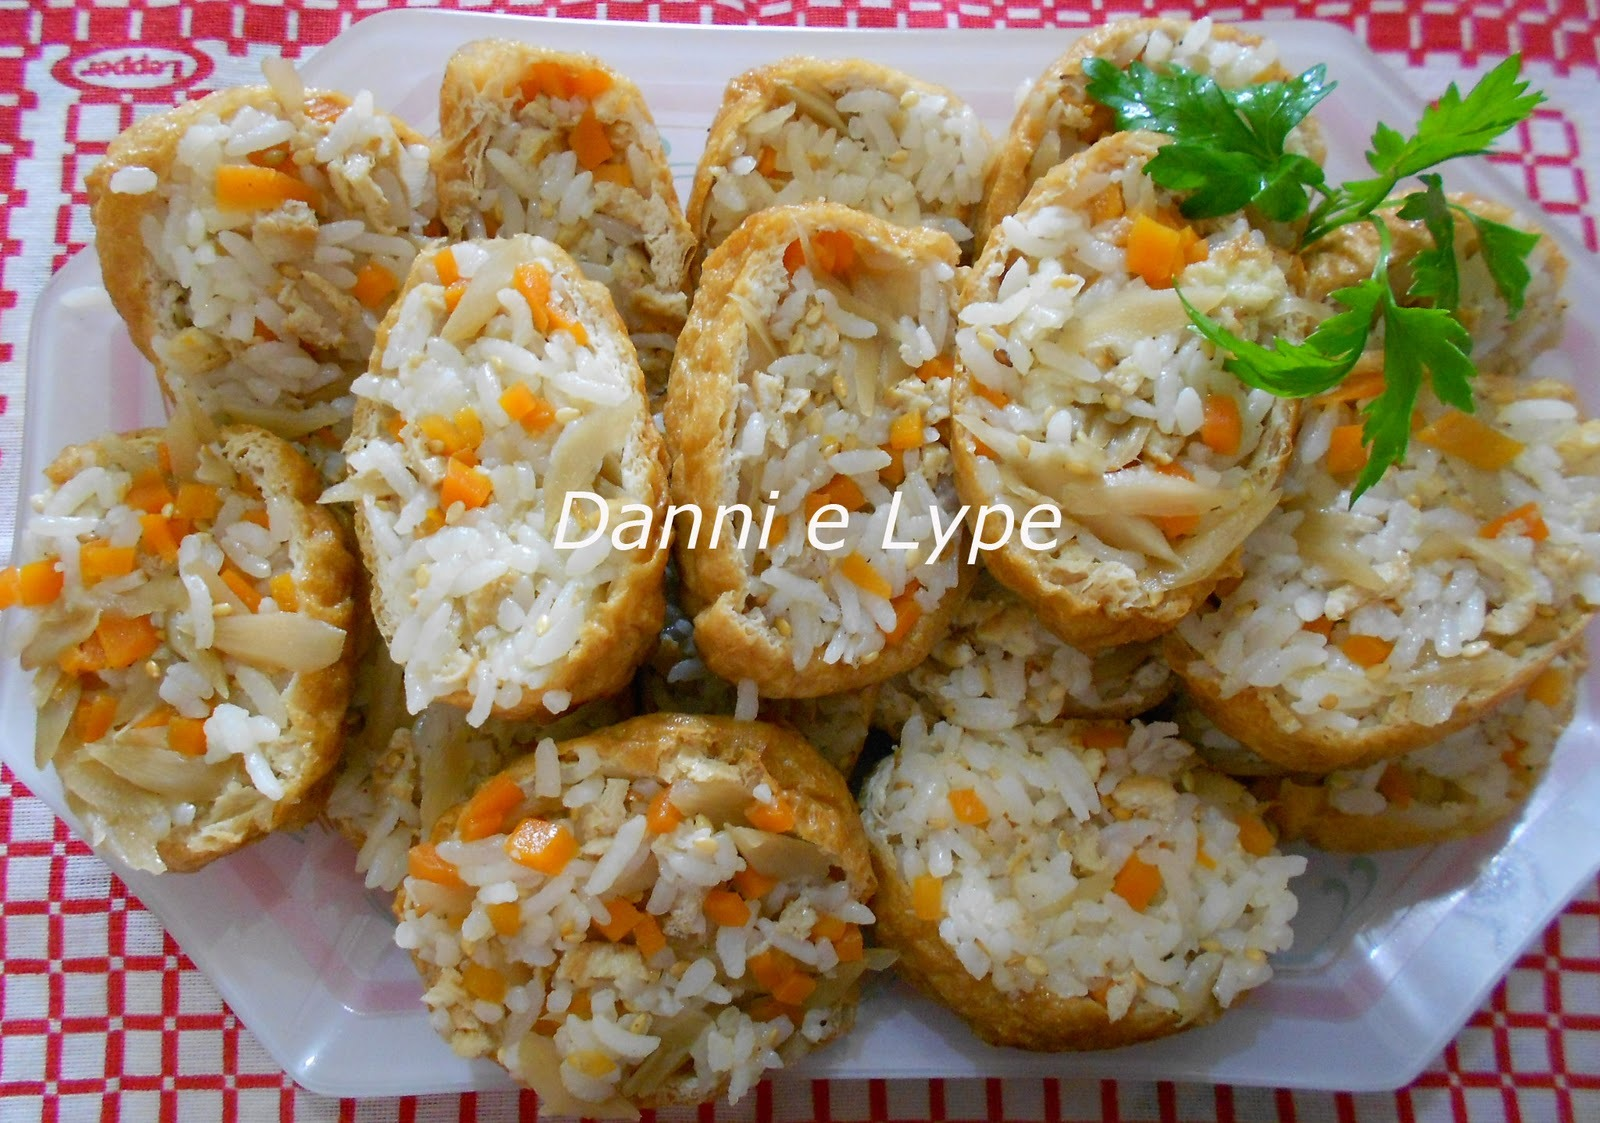 inari sushi tempero do ague